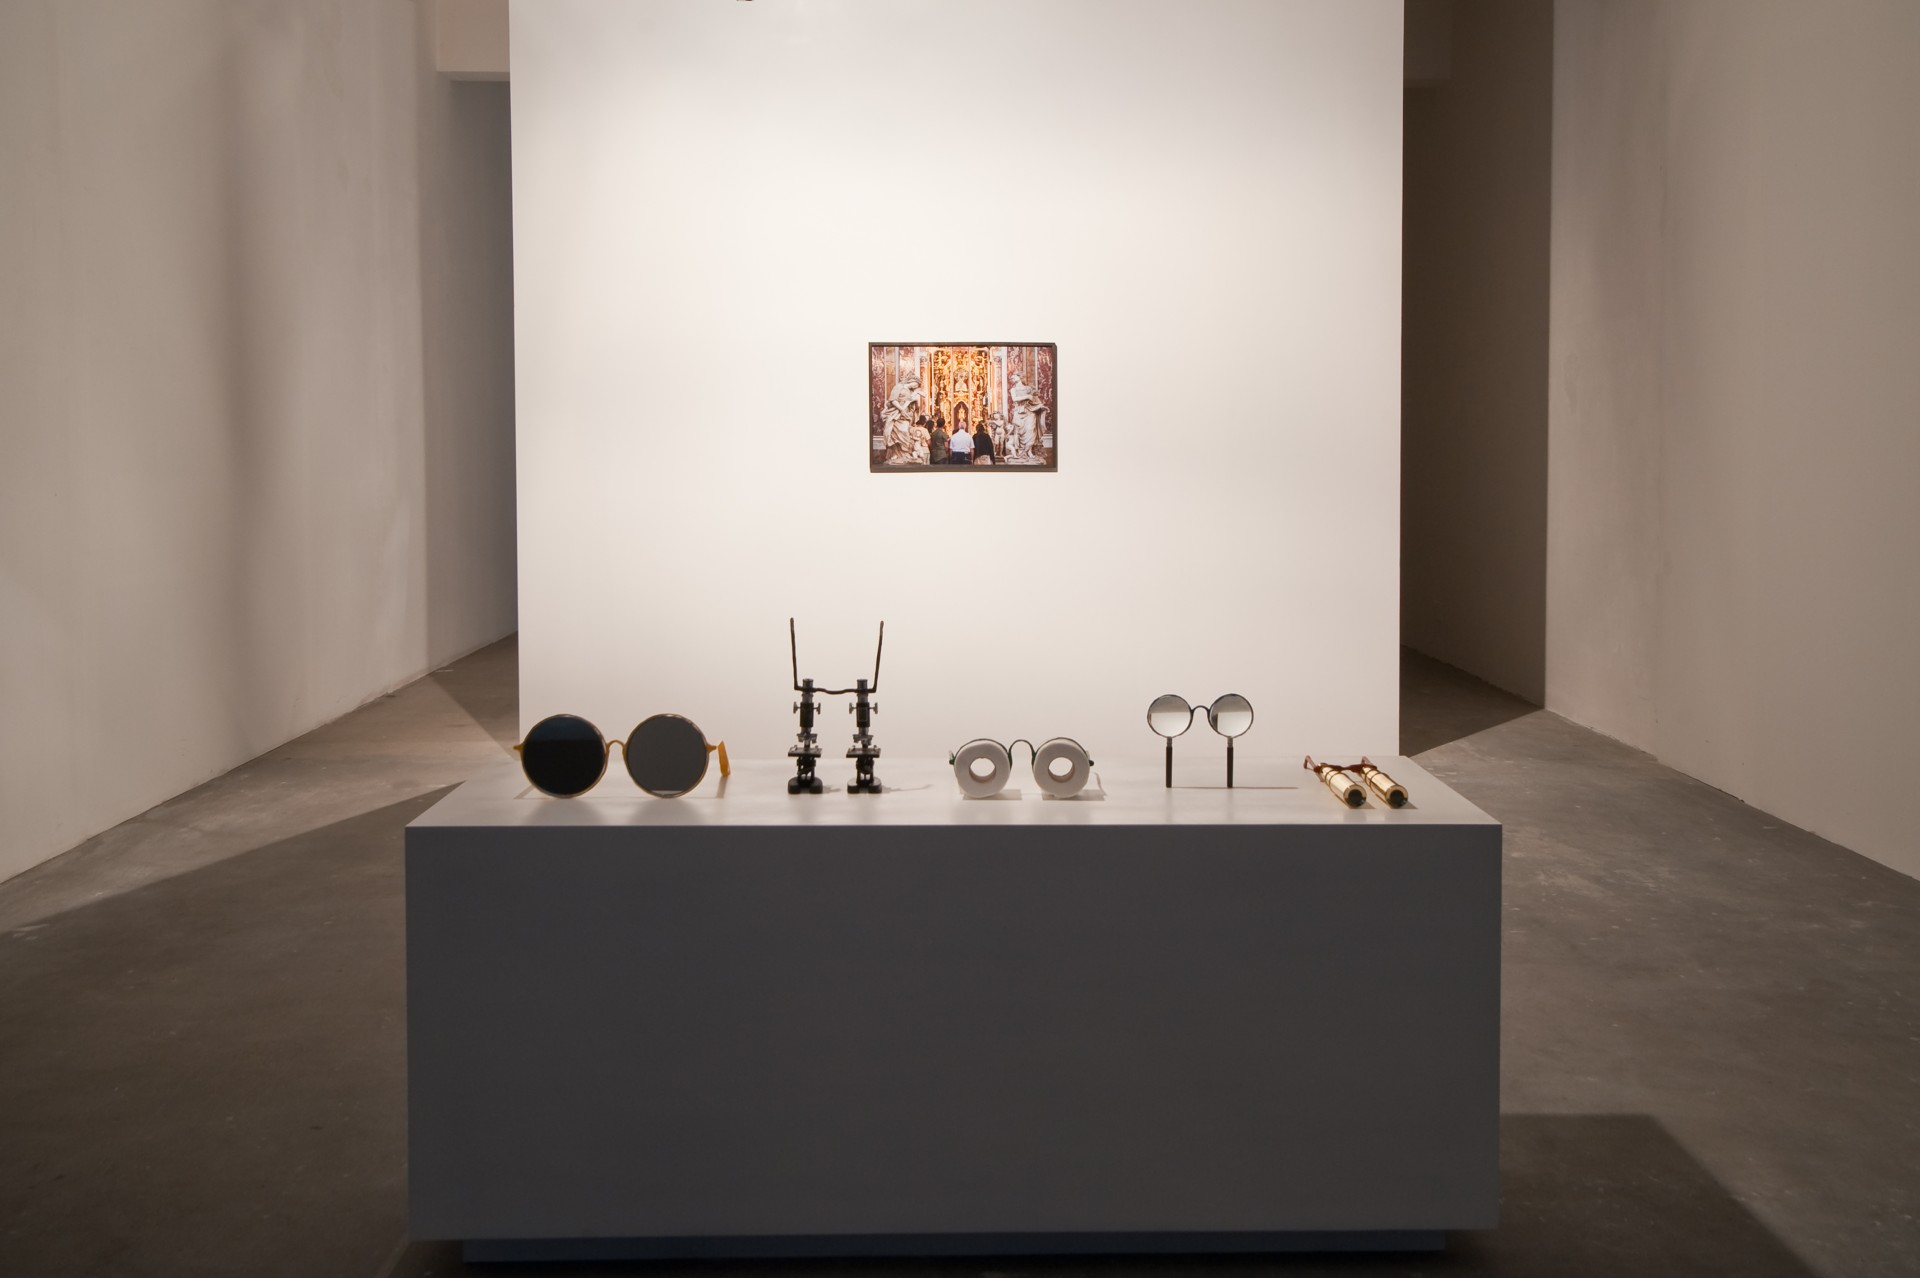 Jamie Isenstein,<i>Spectacle</i>, 2017, installation view at Gluck50, Milan. Courtesy of the artist and Gluck50. Ph. Raph Meazza